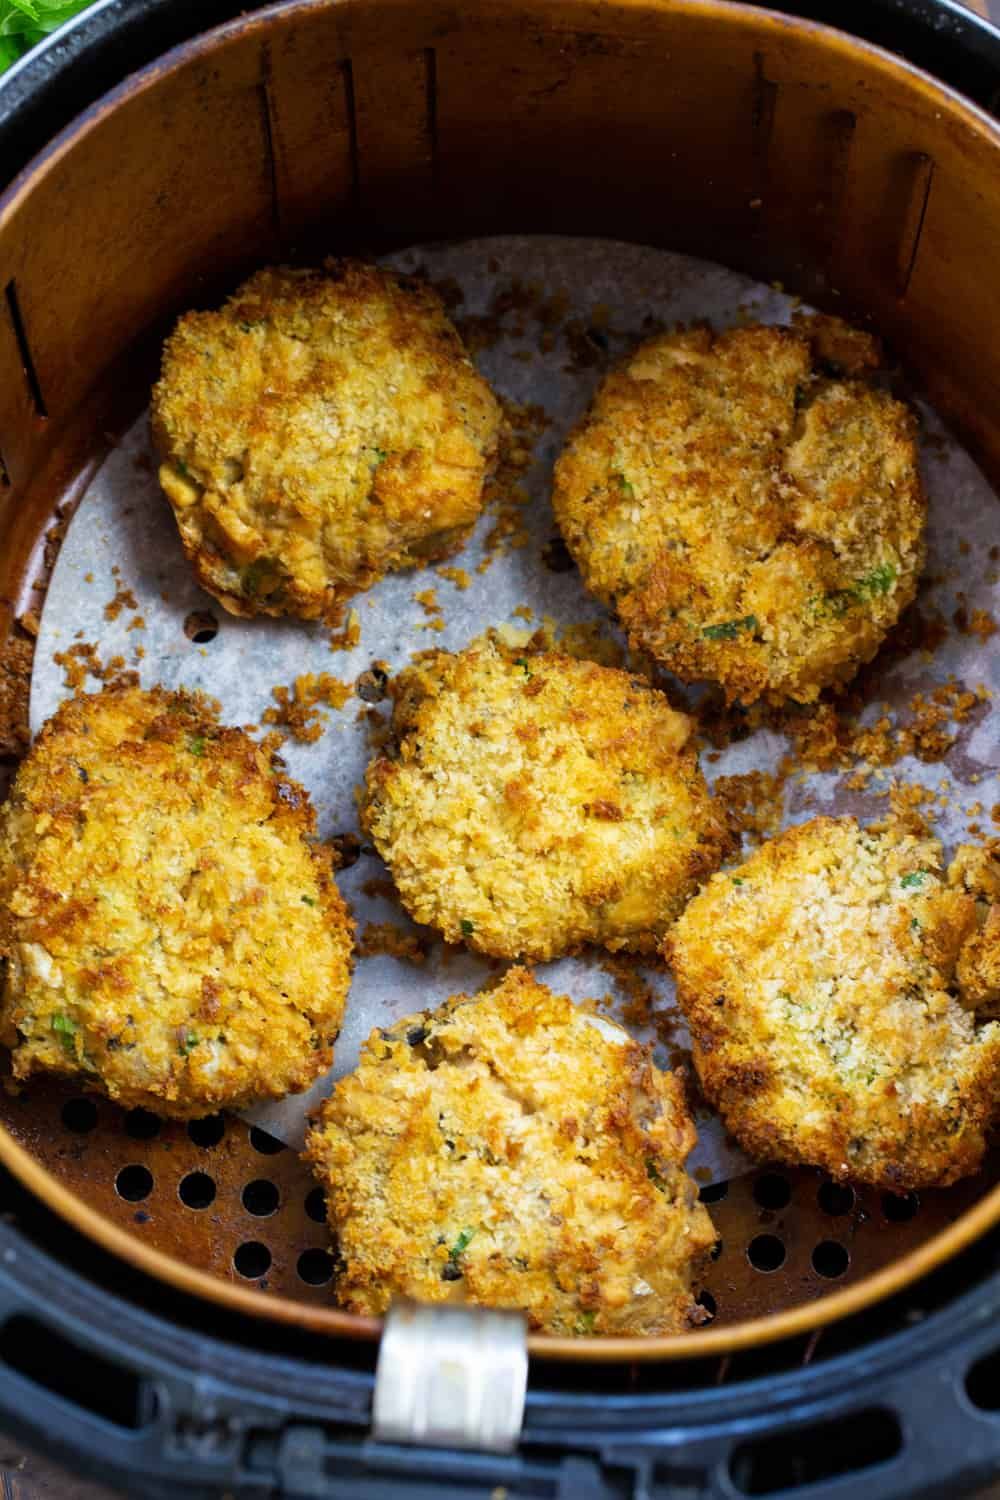 Cooked salmon patties in an air fryer basket.